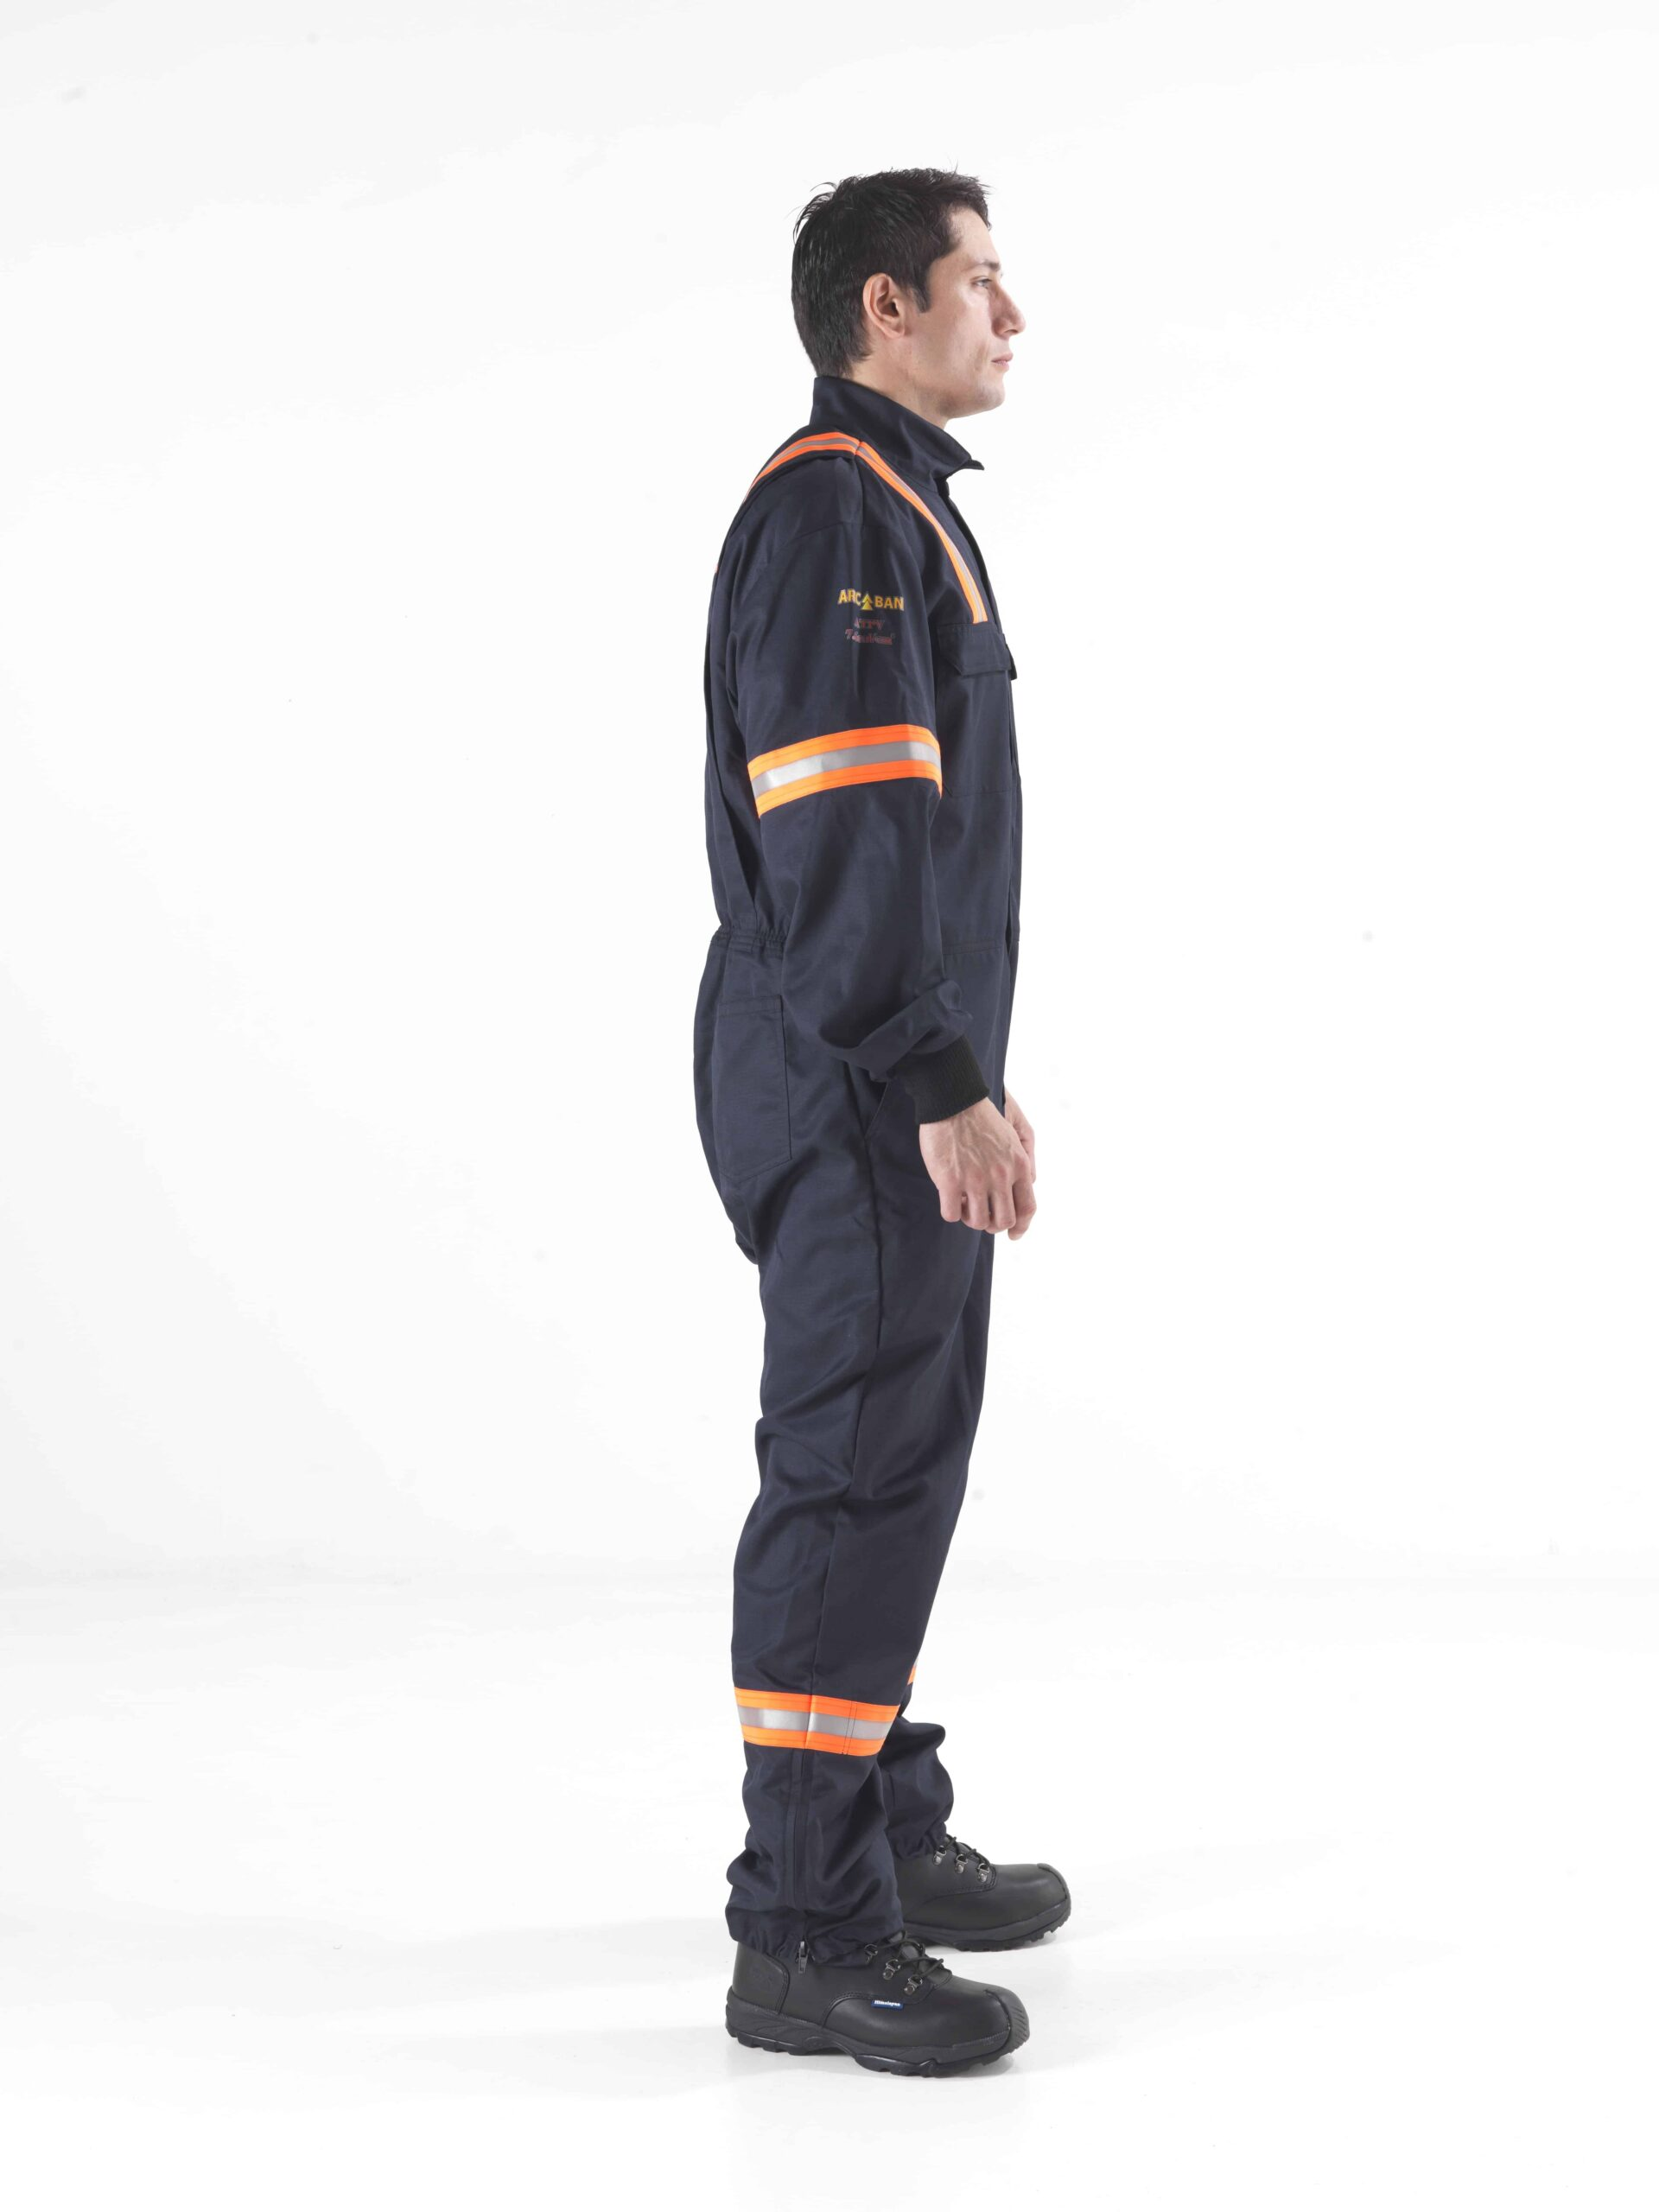 ArcBan® Nordic Deluxe Nomex Coverall right side